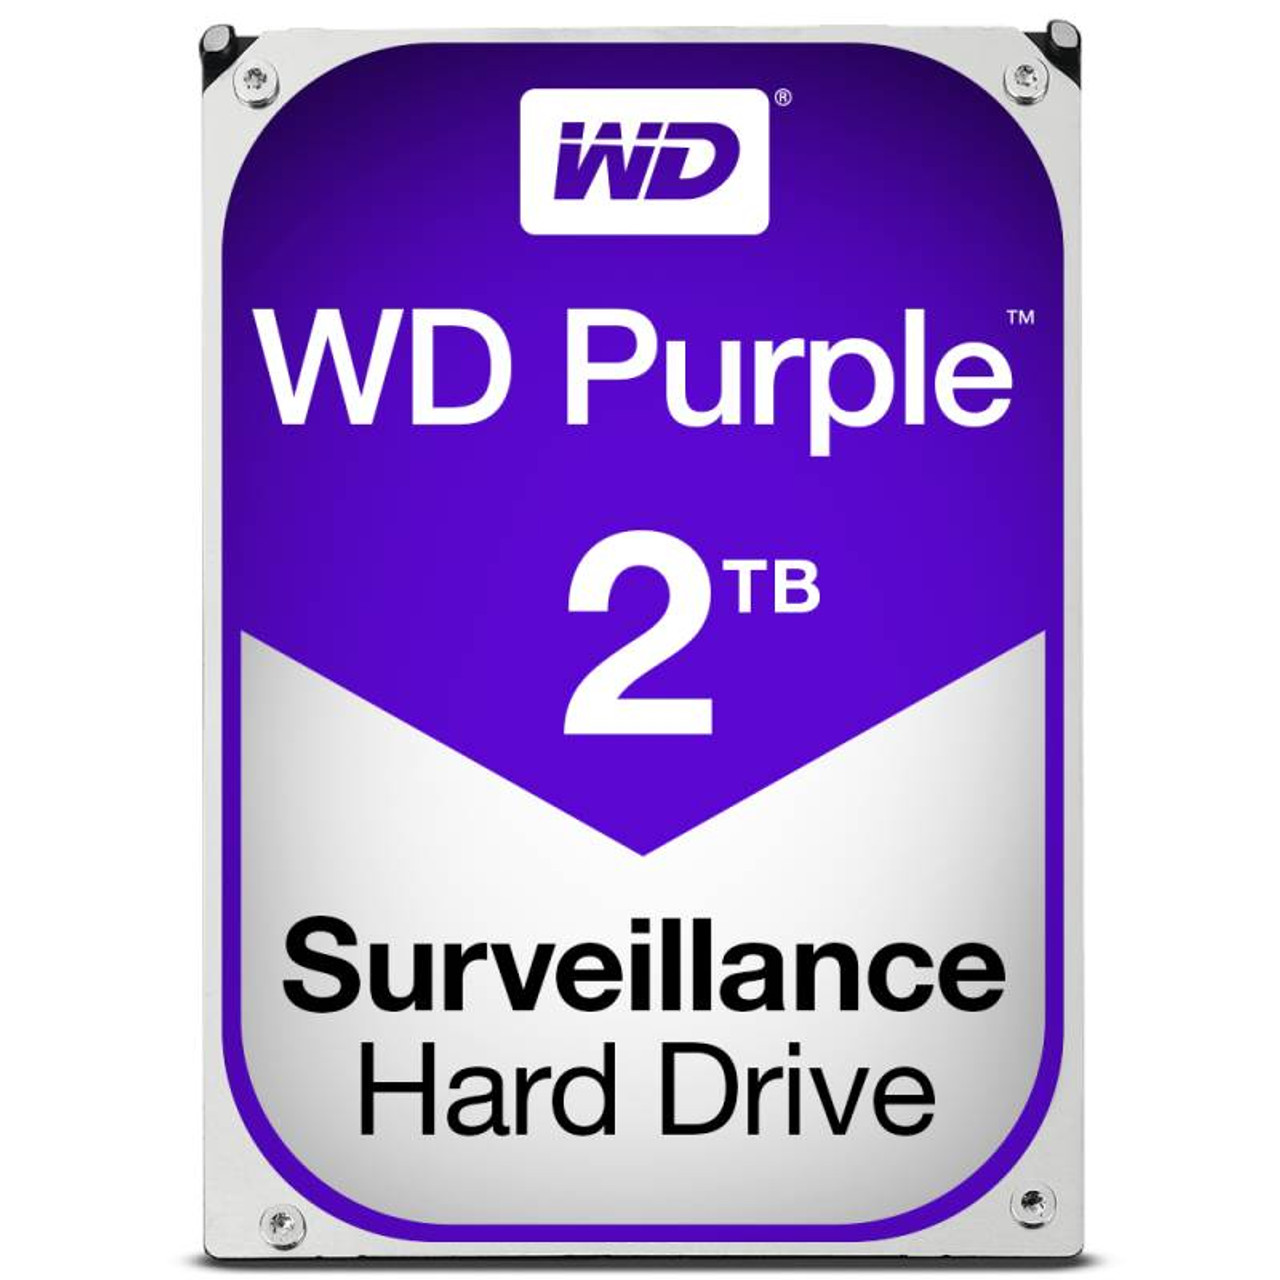 Product image for Western Digital WD Purple 2TB Surveillance Hard Drive | CX Computer Superstore